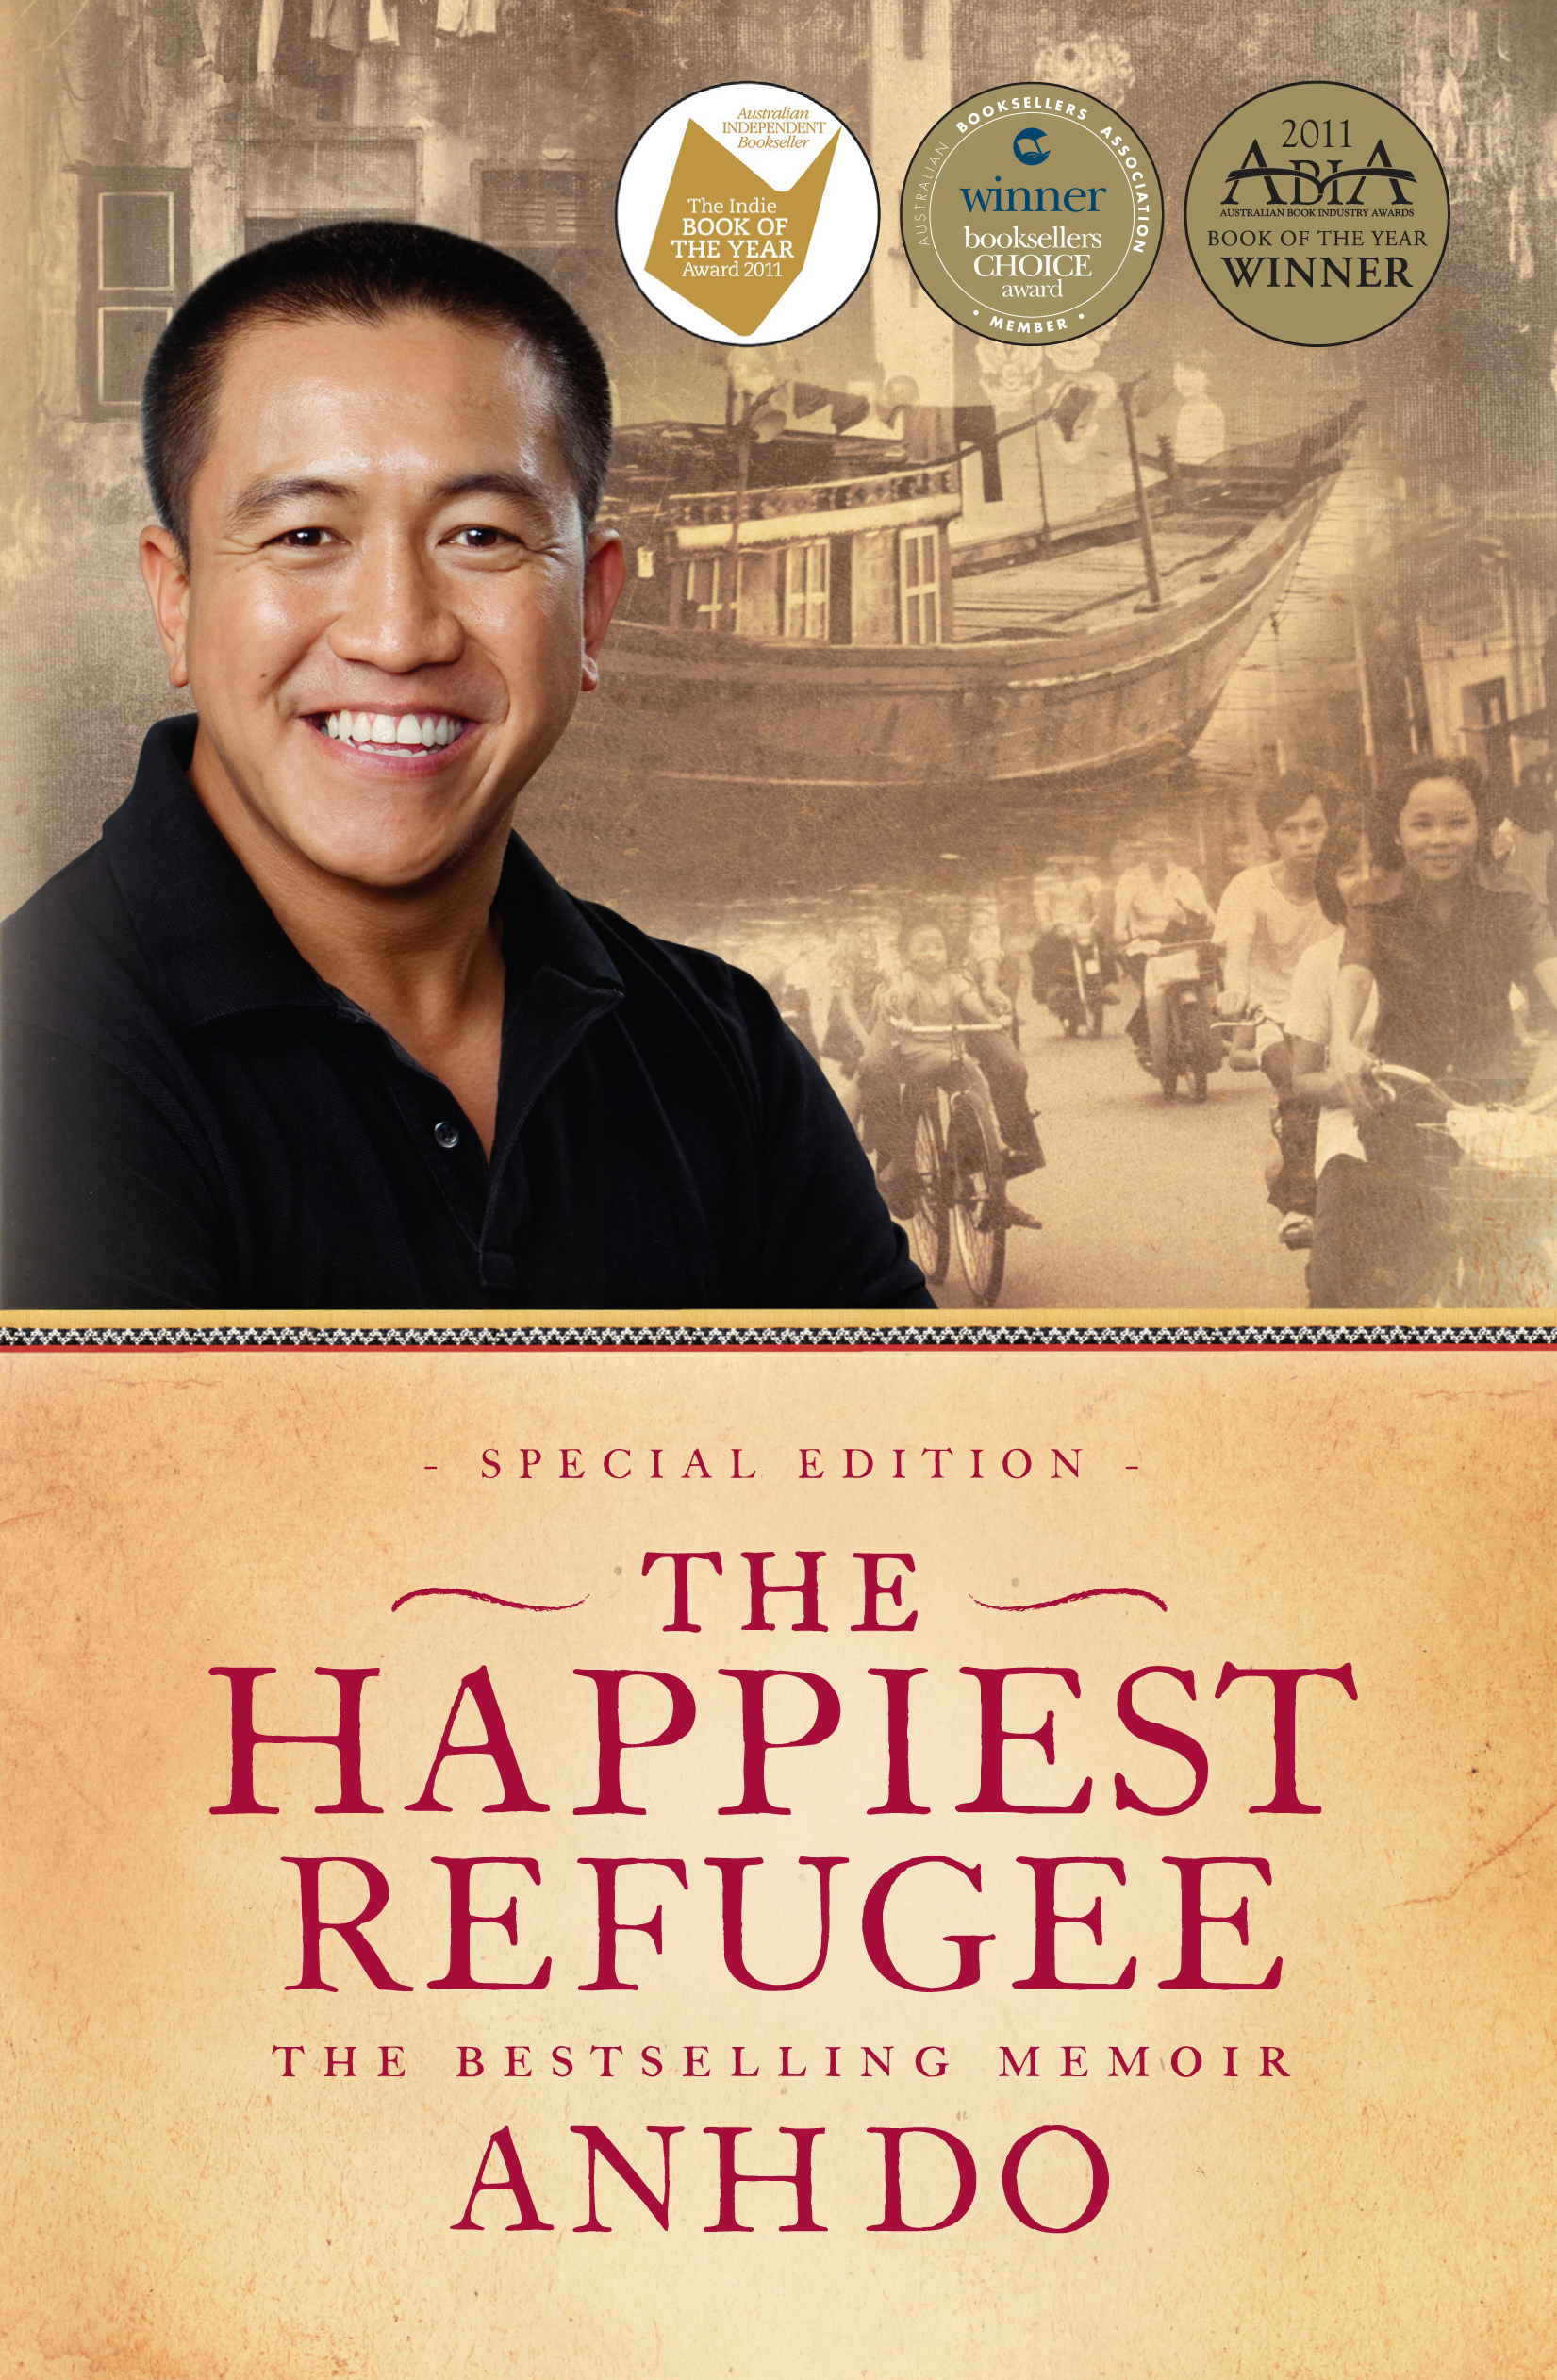 ahn do book review Read a free sample or buy the happiest refugee by anh do you can read this book with ibooks on your iphone, ipad, ipod touch or mac  customer reviews inspiring.